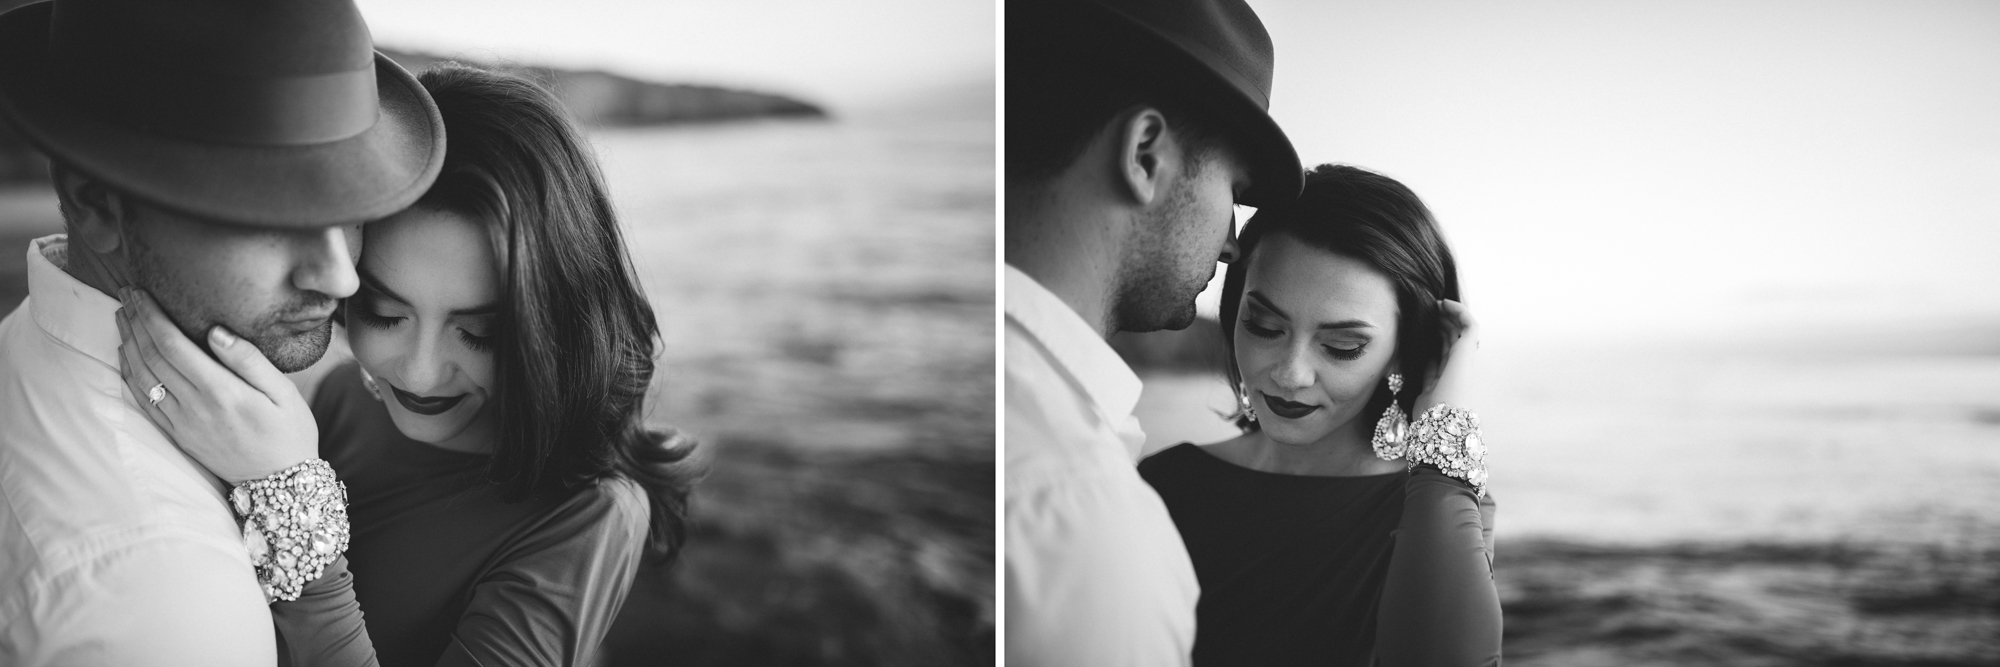 Isaiah & Taylor Photography - Los Angeles - Destination Wedding Photographers - San Diego Sunset Cliffs Beach Adventure Engagement-36.jpg